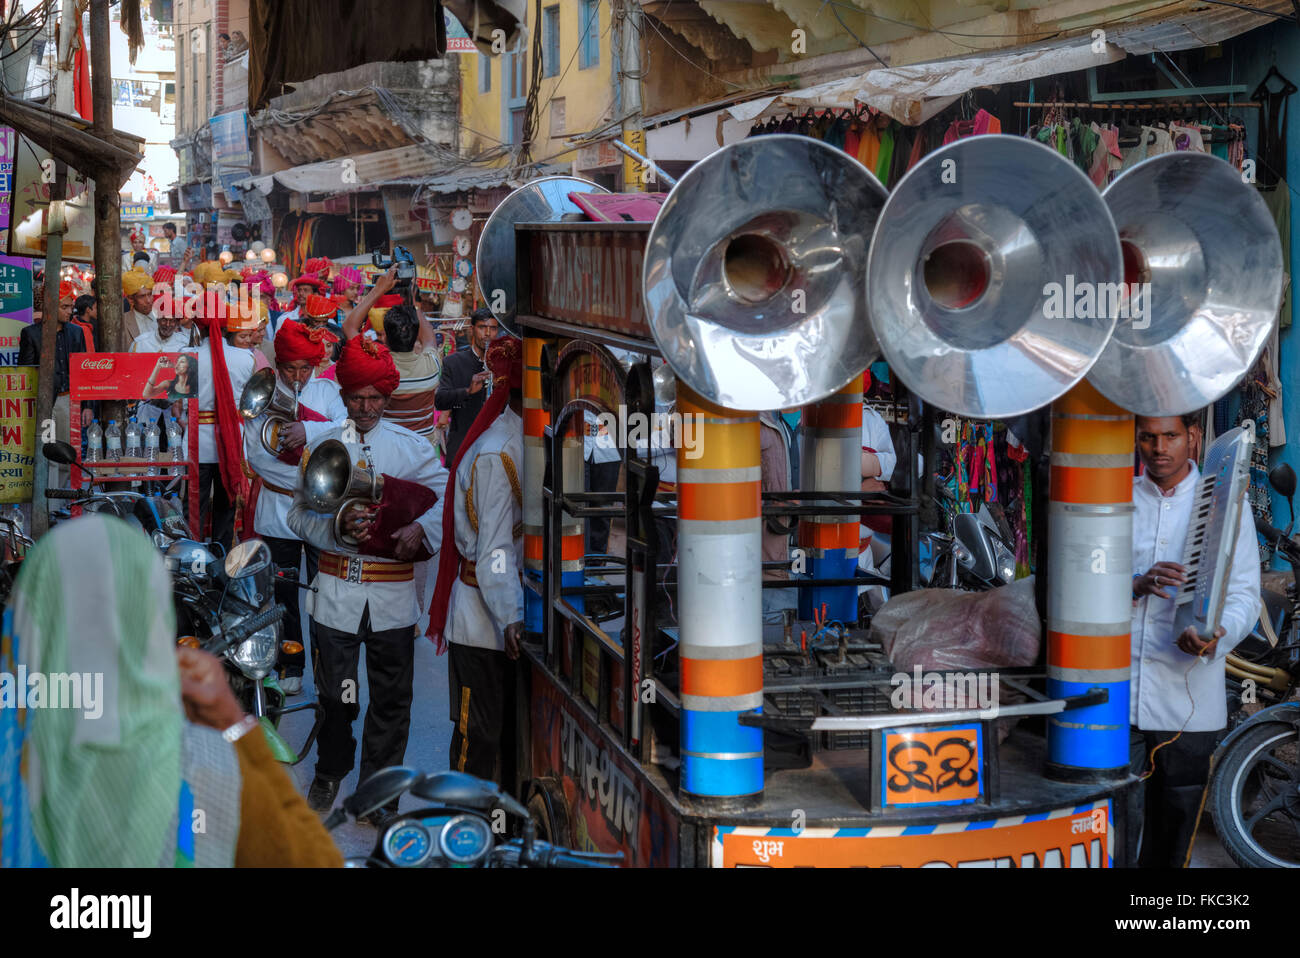 a Hindu wedding procession in Pushkar, Ajmer, Rajasthan, India, Asia - Stock Image